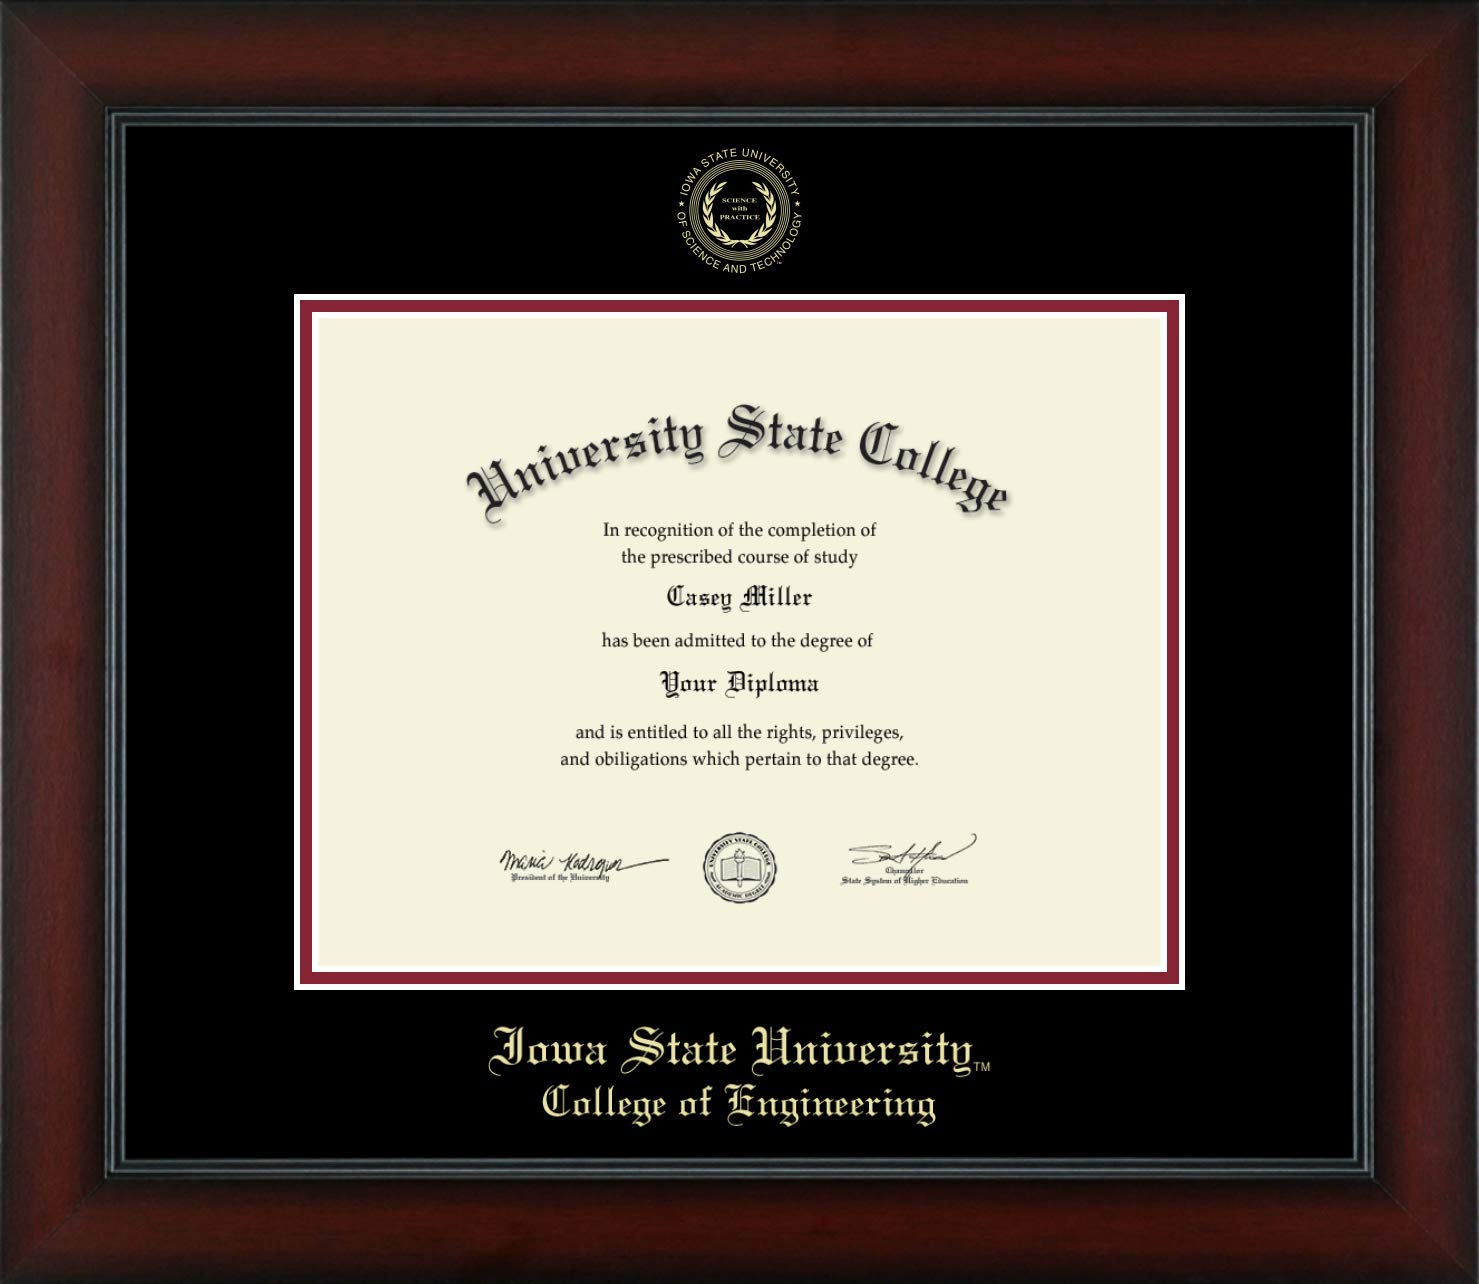 Iowa State University College of Engineering - Officially Licensed - Gold Embossed Diploma Frame - Diploma Size 11'' x 8.5''